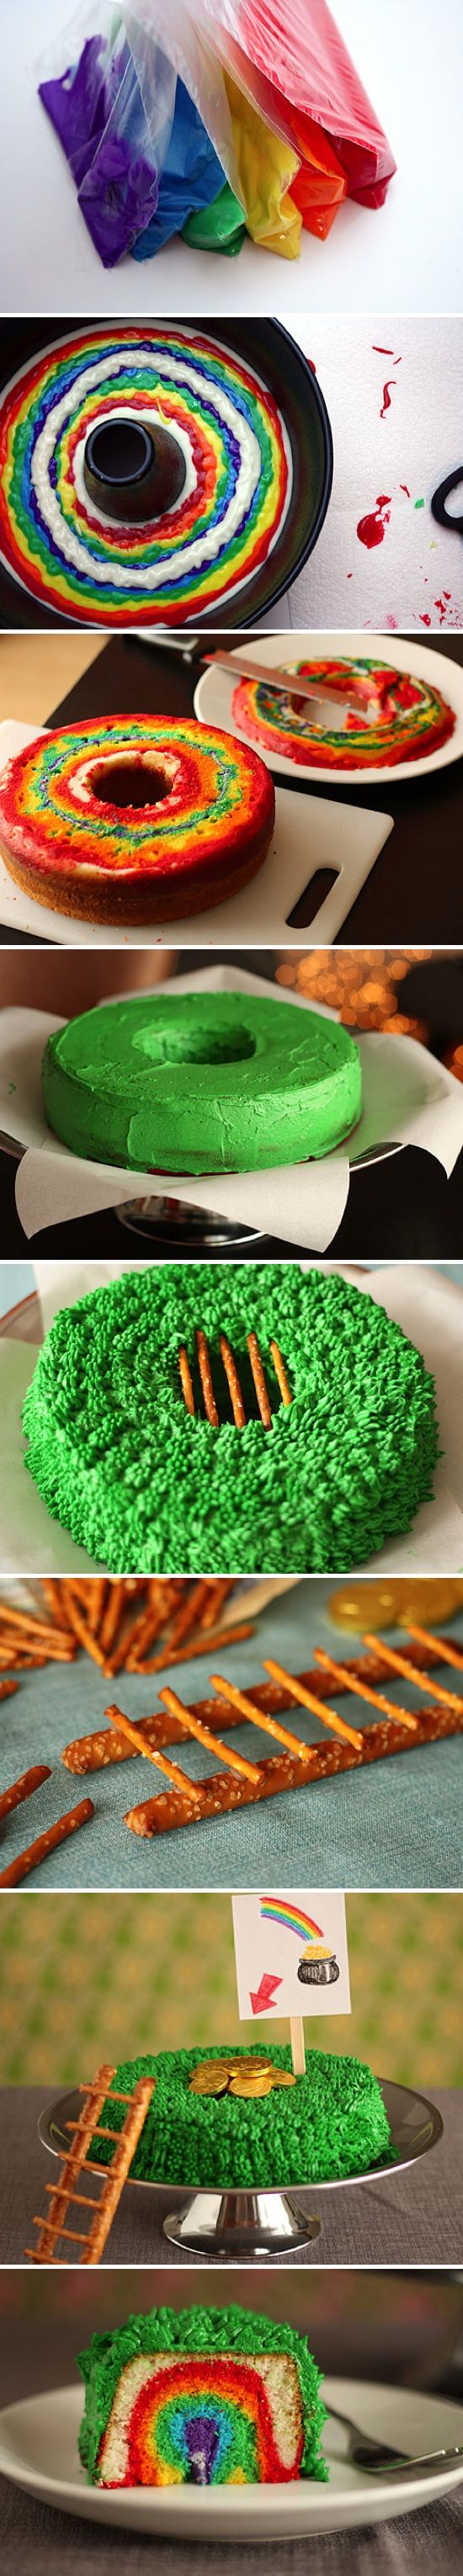 Leprechaun Trap Cake | Recipe By Photo